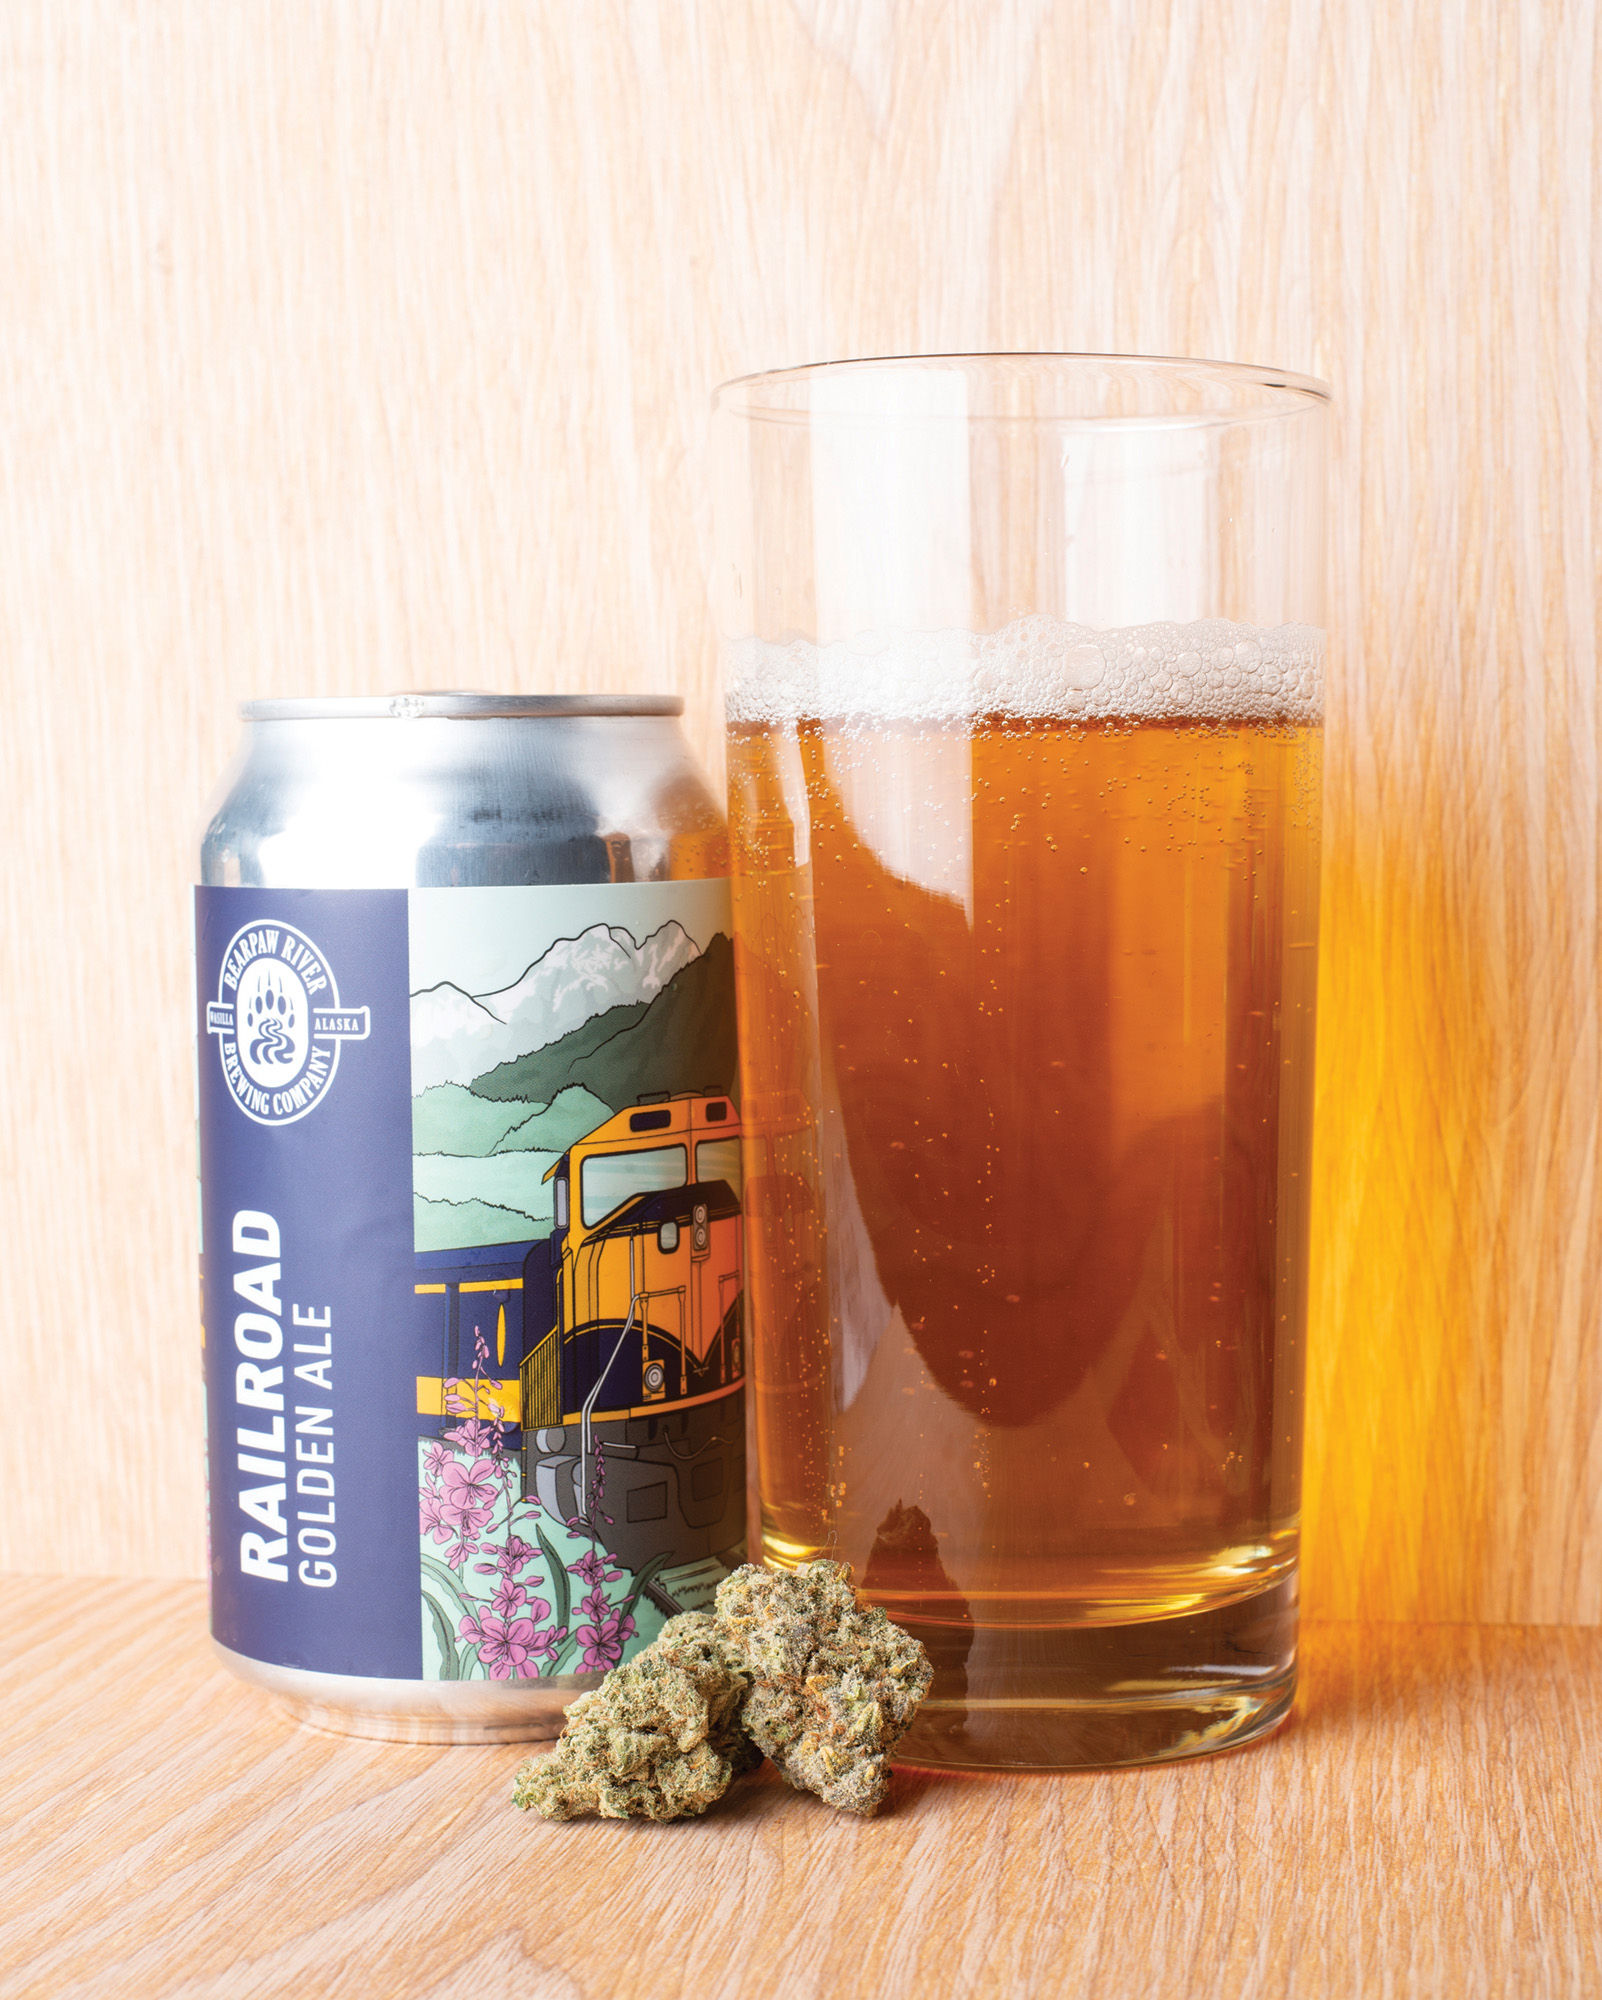 Peppermint Kush and Railroad Golden Ale